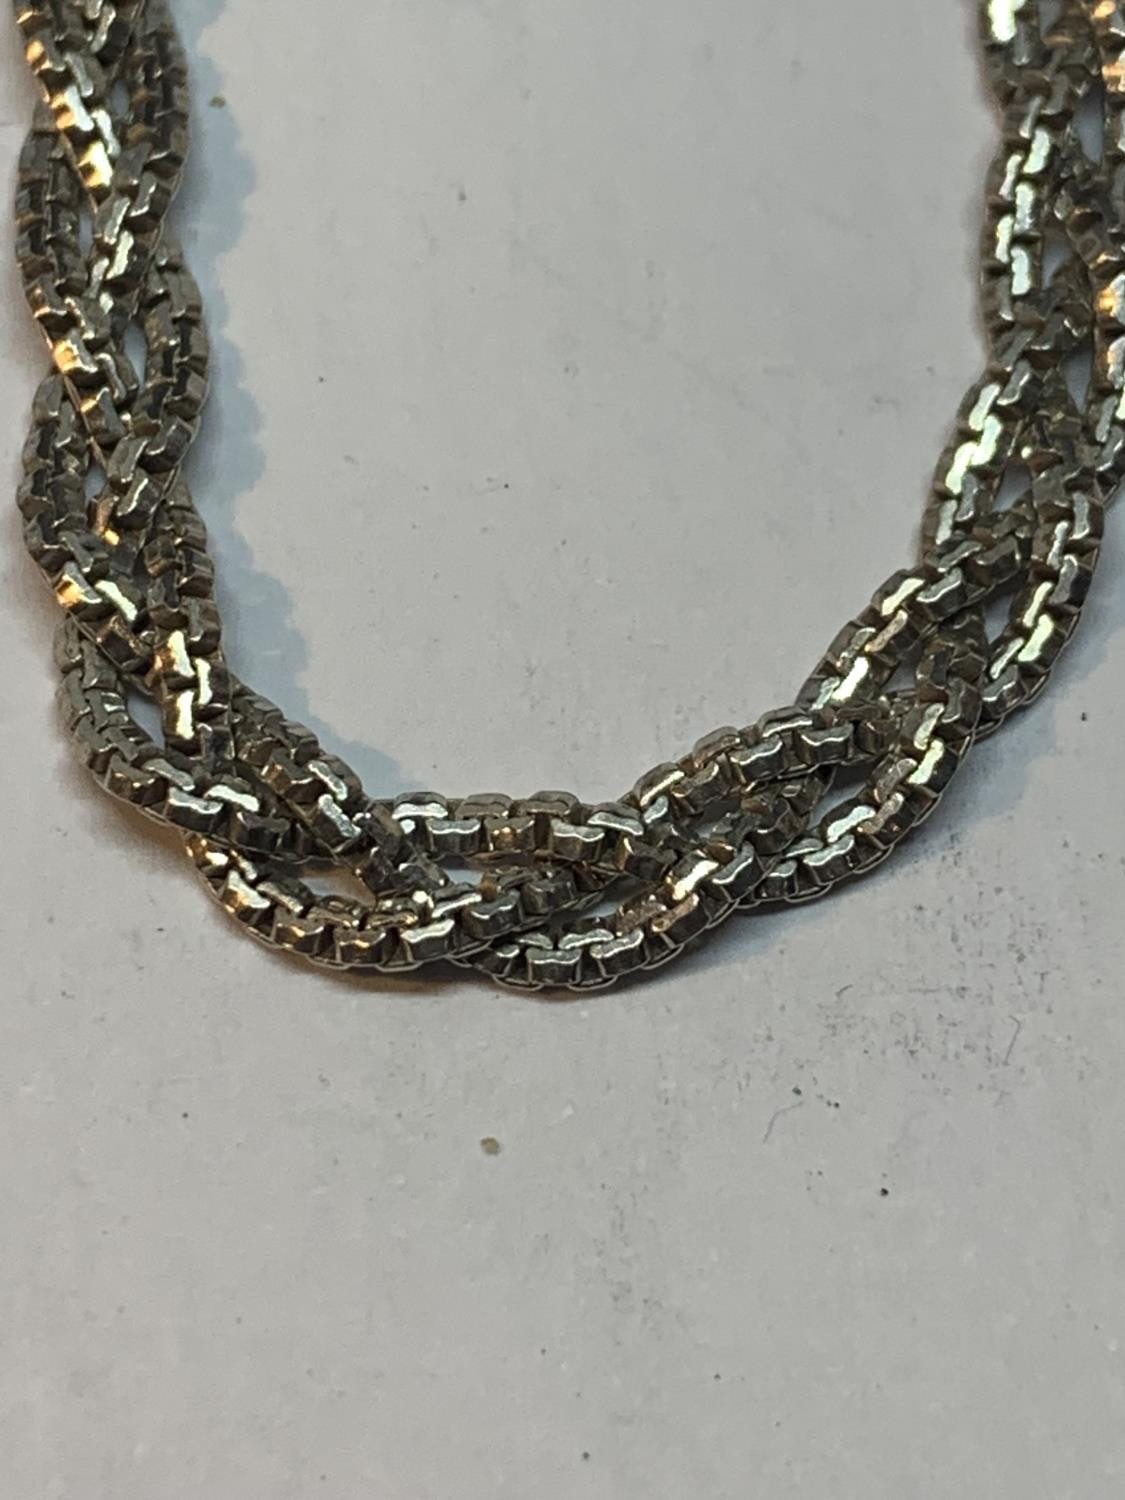 A SILVER TWISTED NECKLACE 16 INCHES LONG - Image 2 of 3